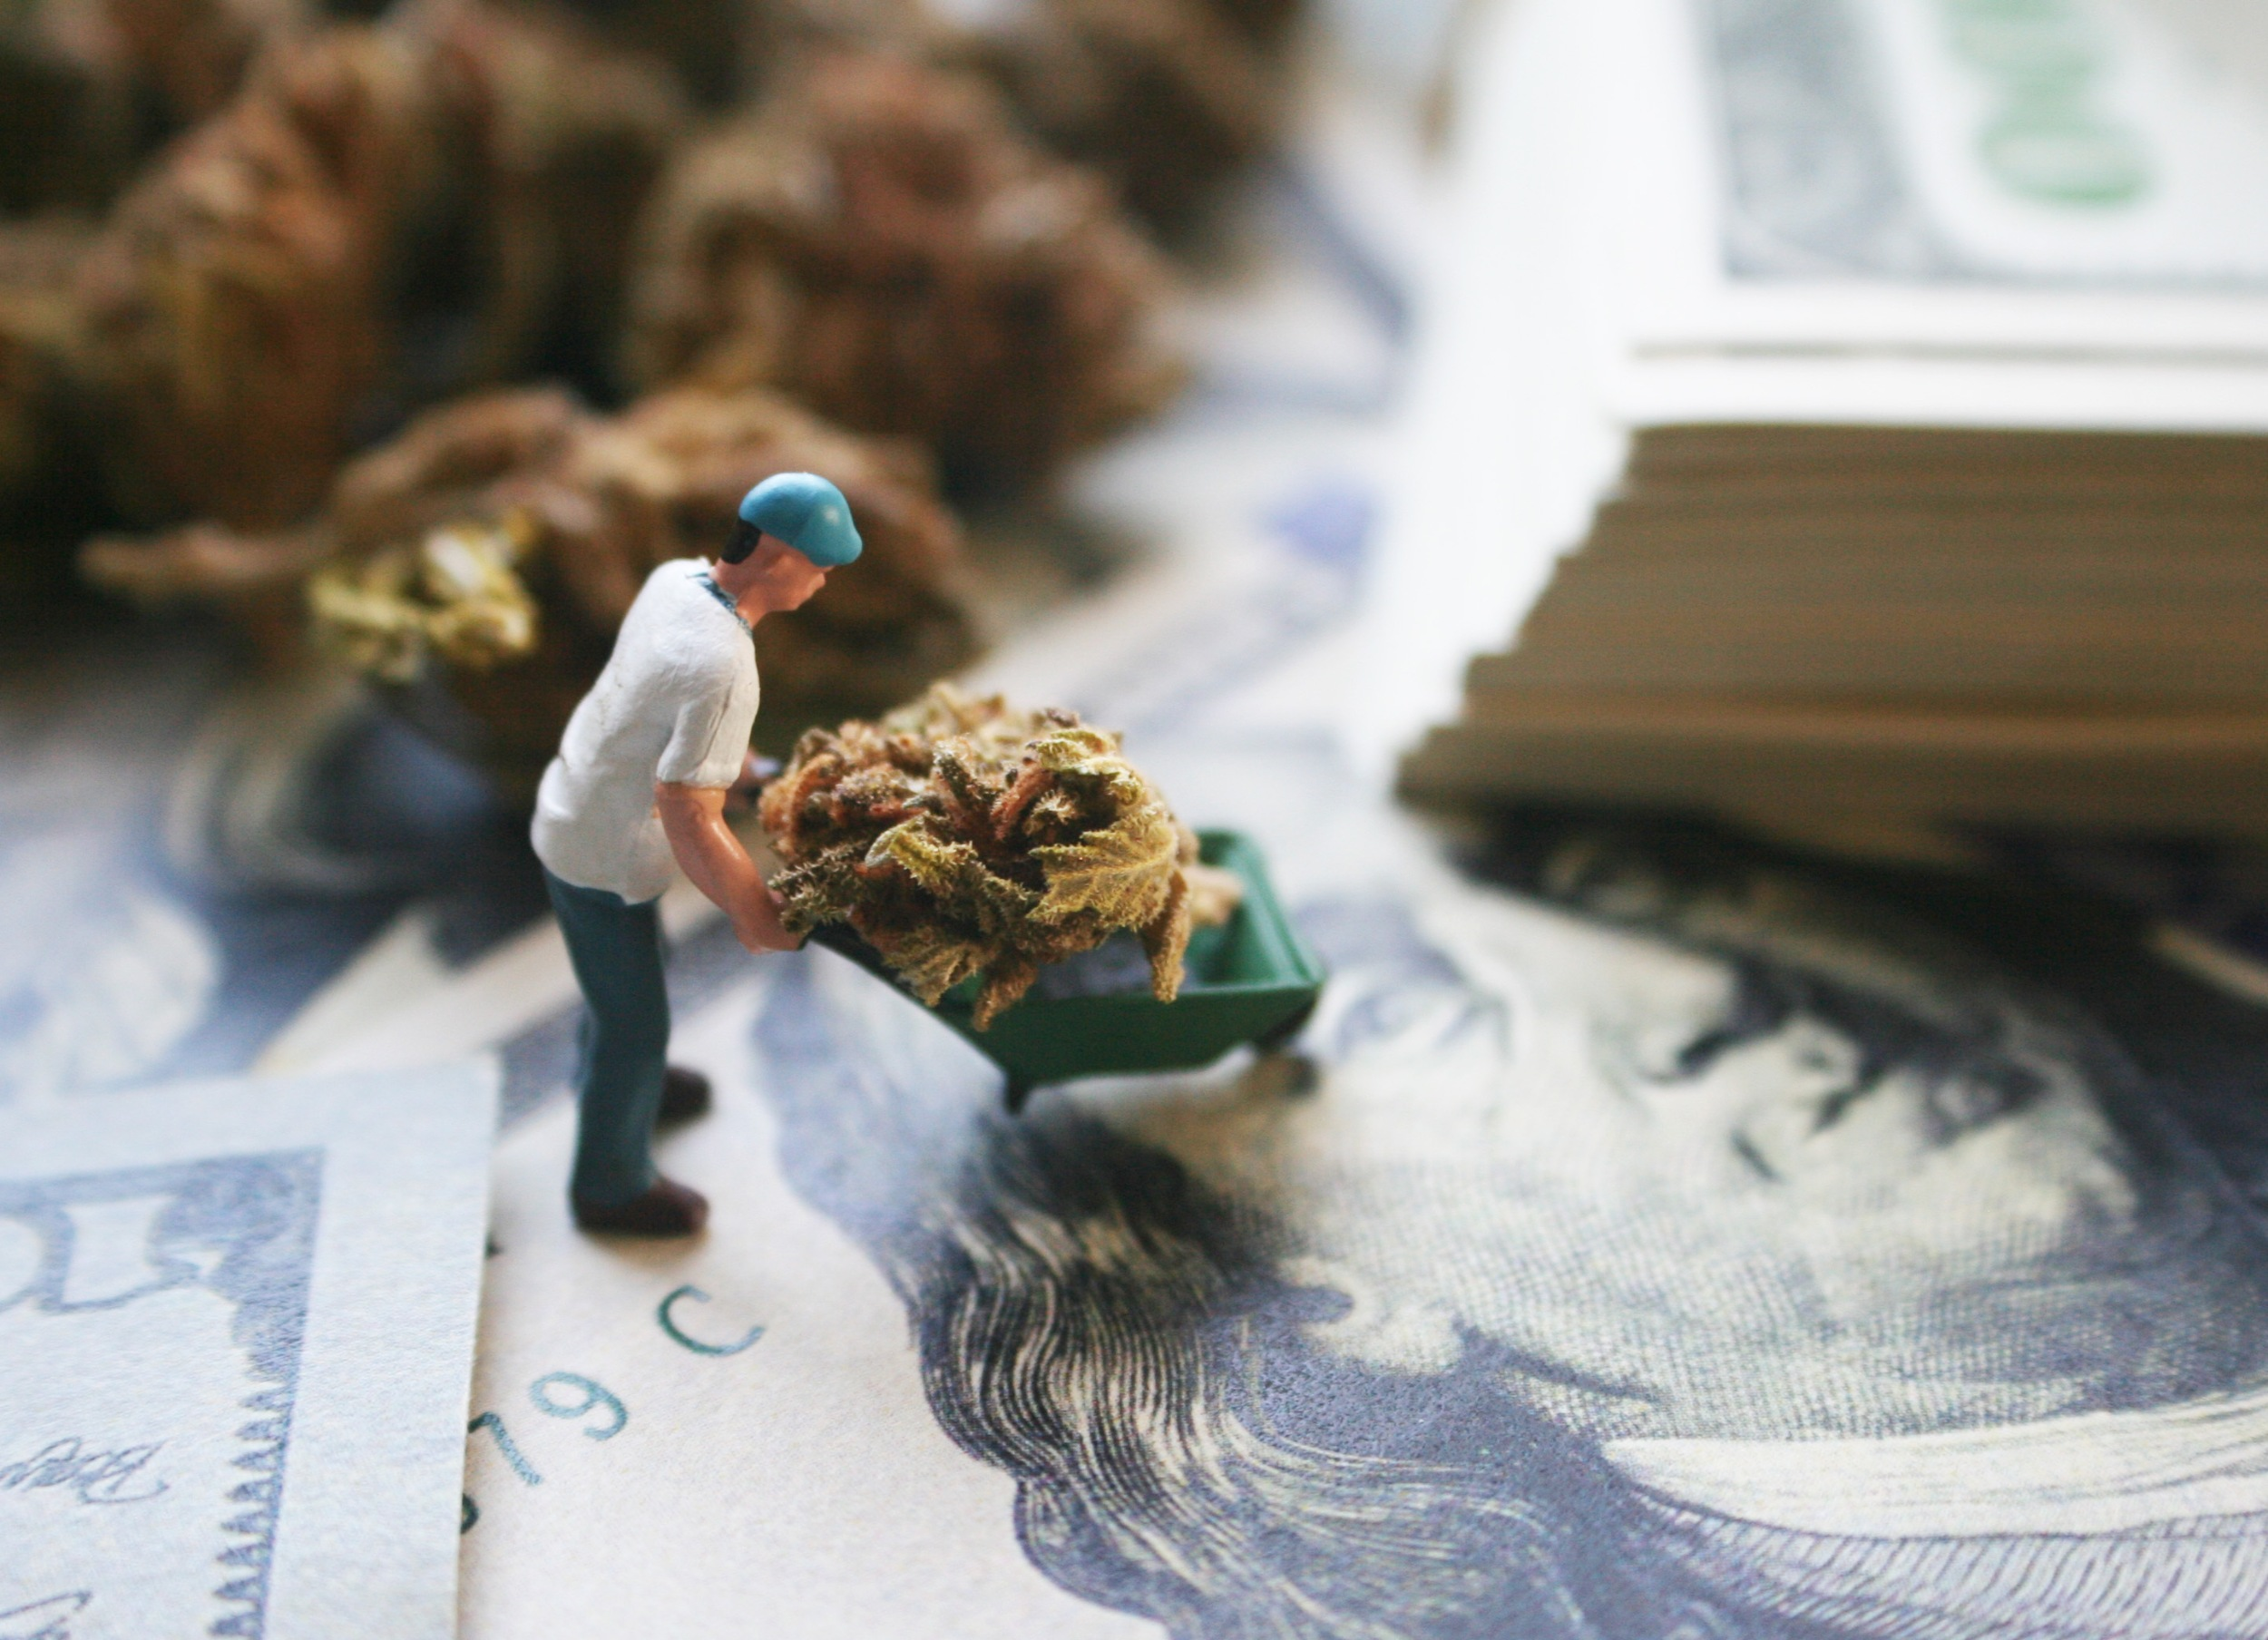 Taxing Cannabis Easier Than Before